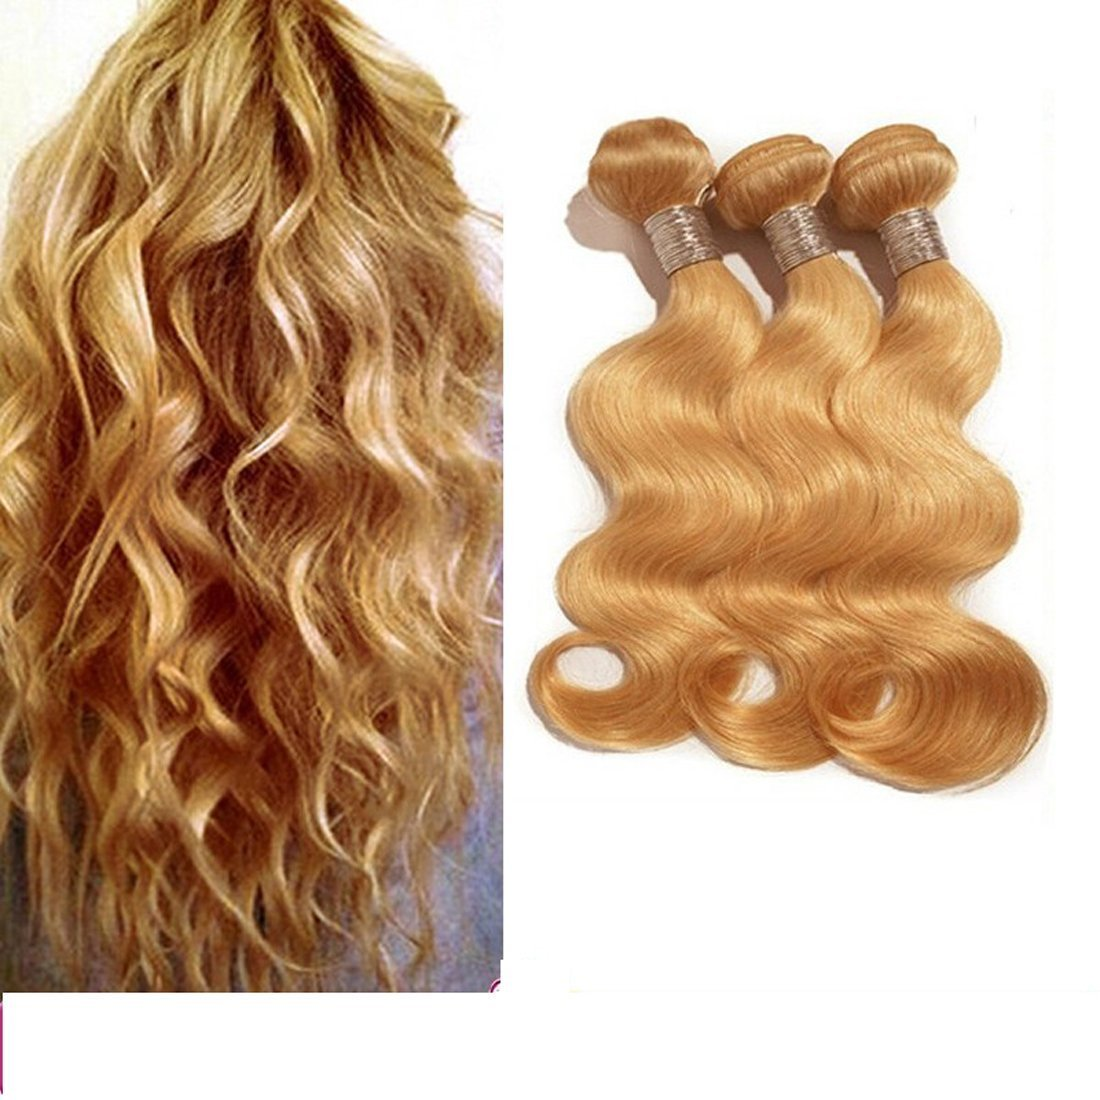 Cheap 300g Hair Extensions Find 300g Hair Extensions Deals On Line